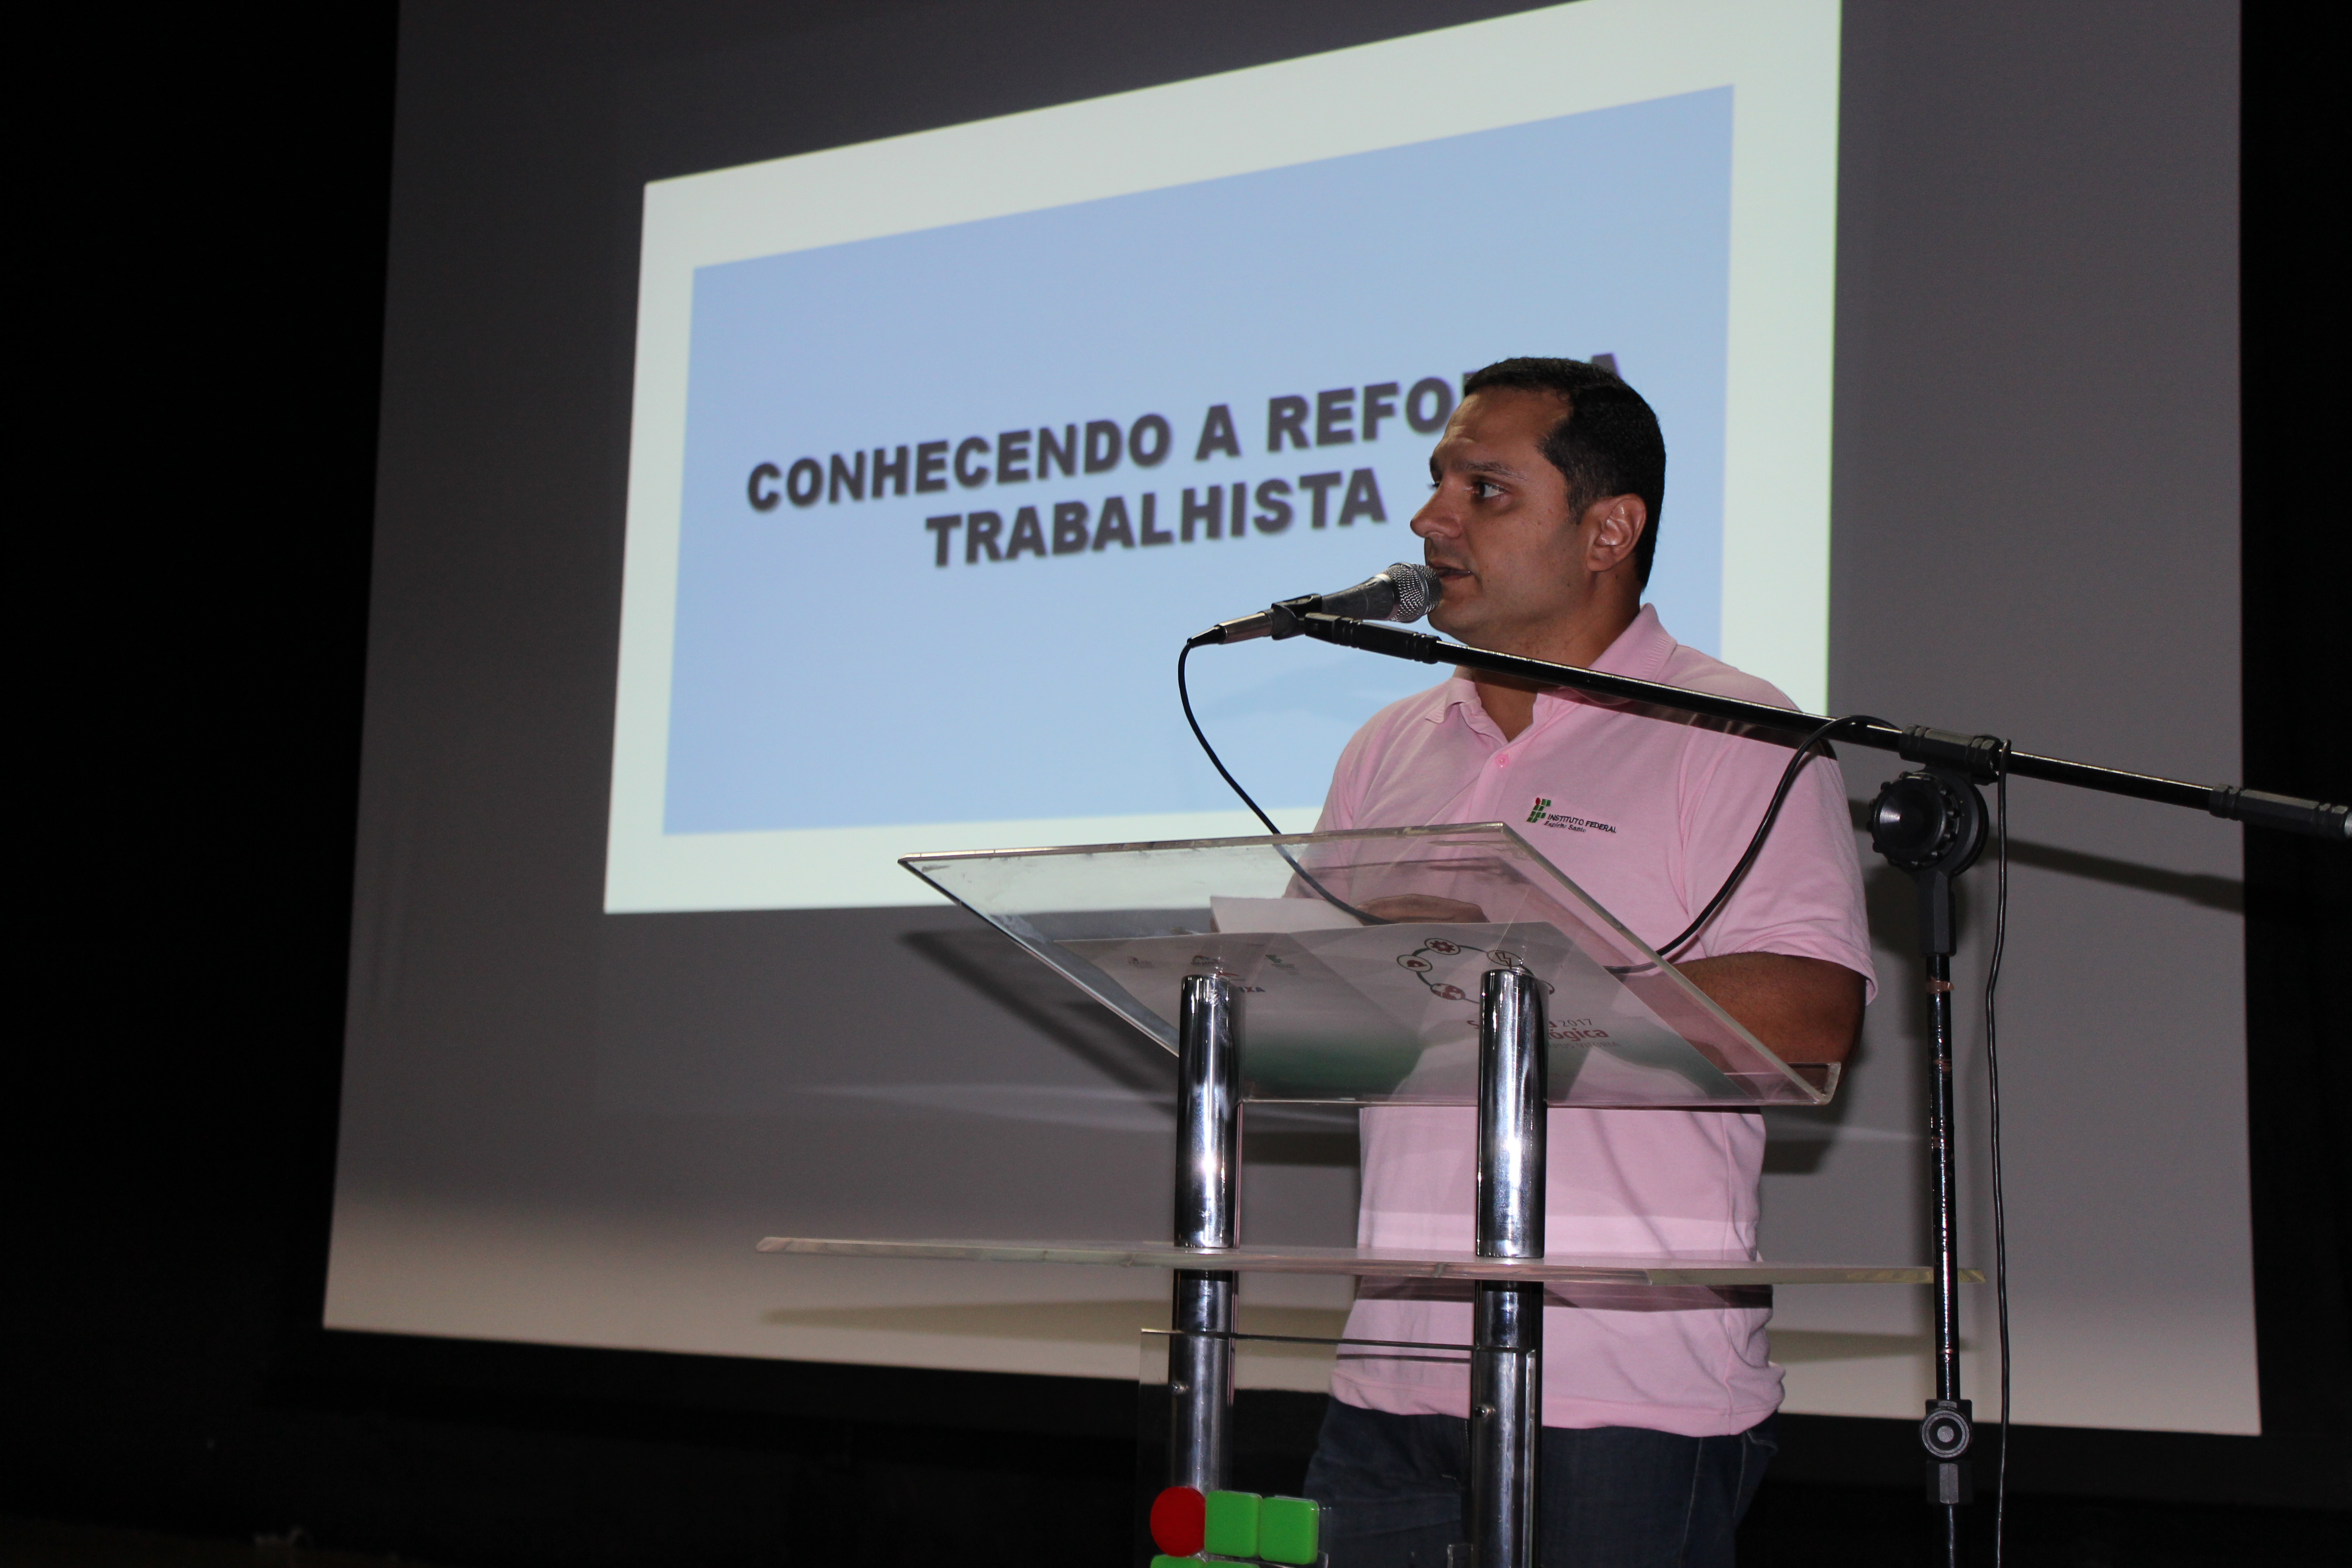 Rodrigo Marçal Pereira speaks to more than 1,200 attendees at the technology conference sponsored by IFES – Instituto Federal do Espirito Santo .